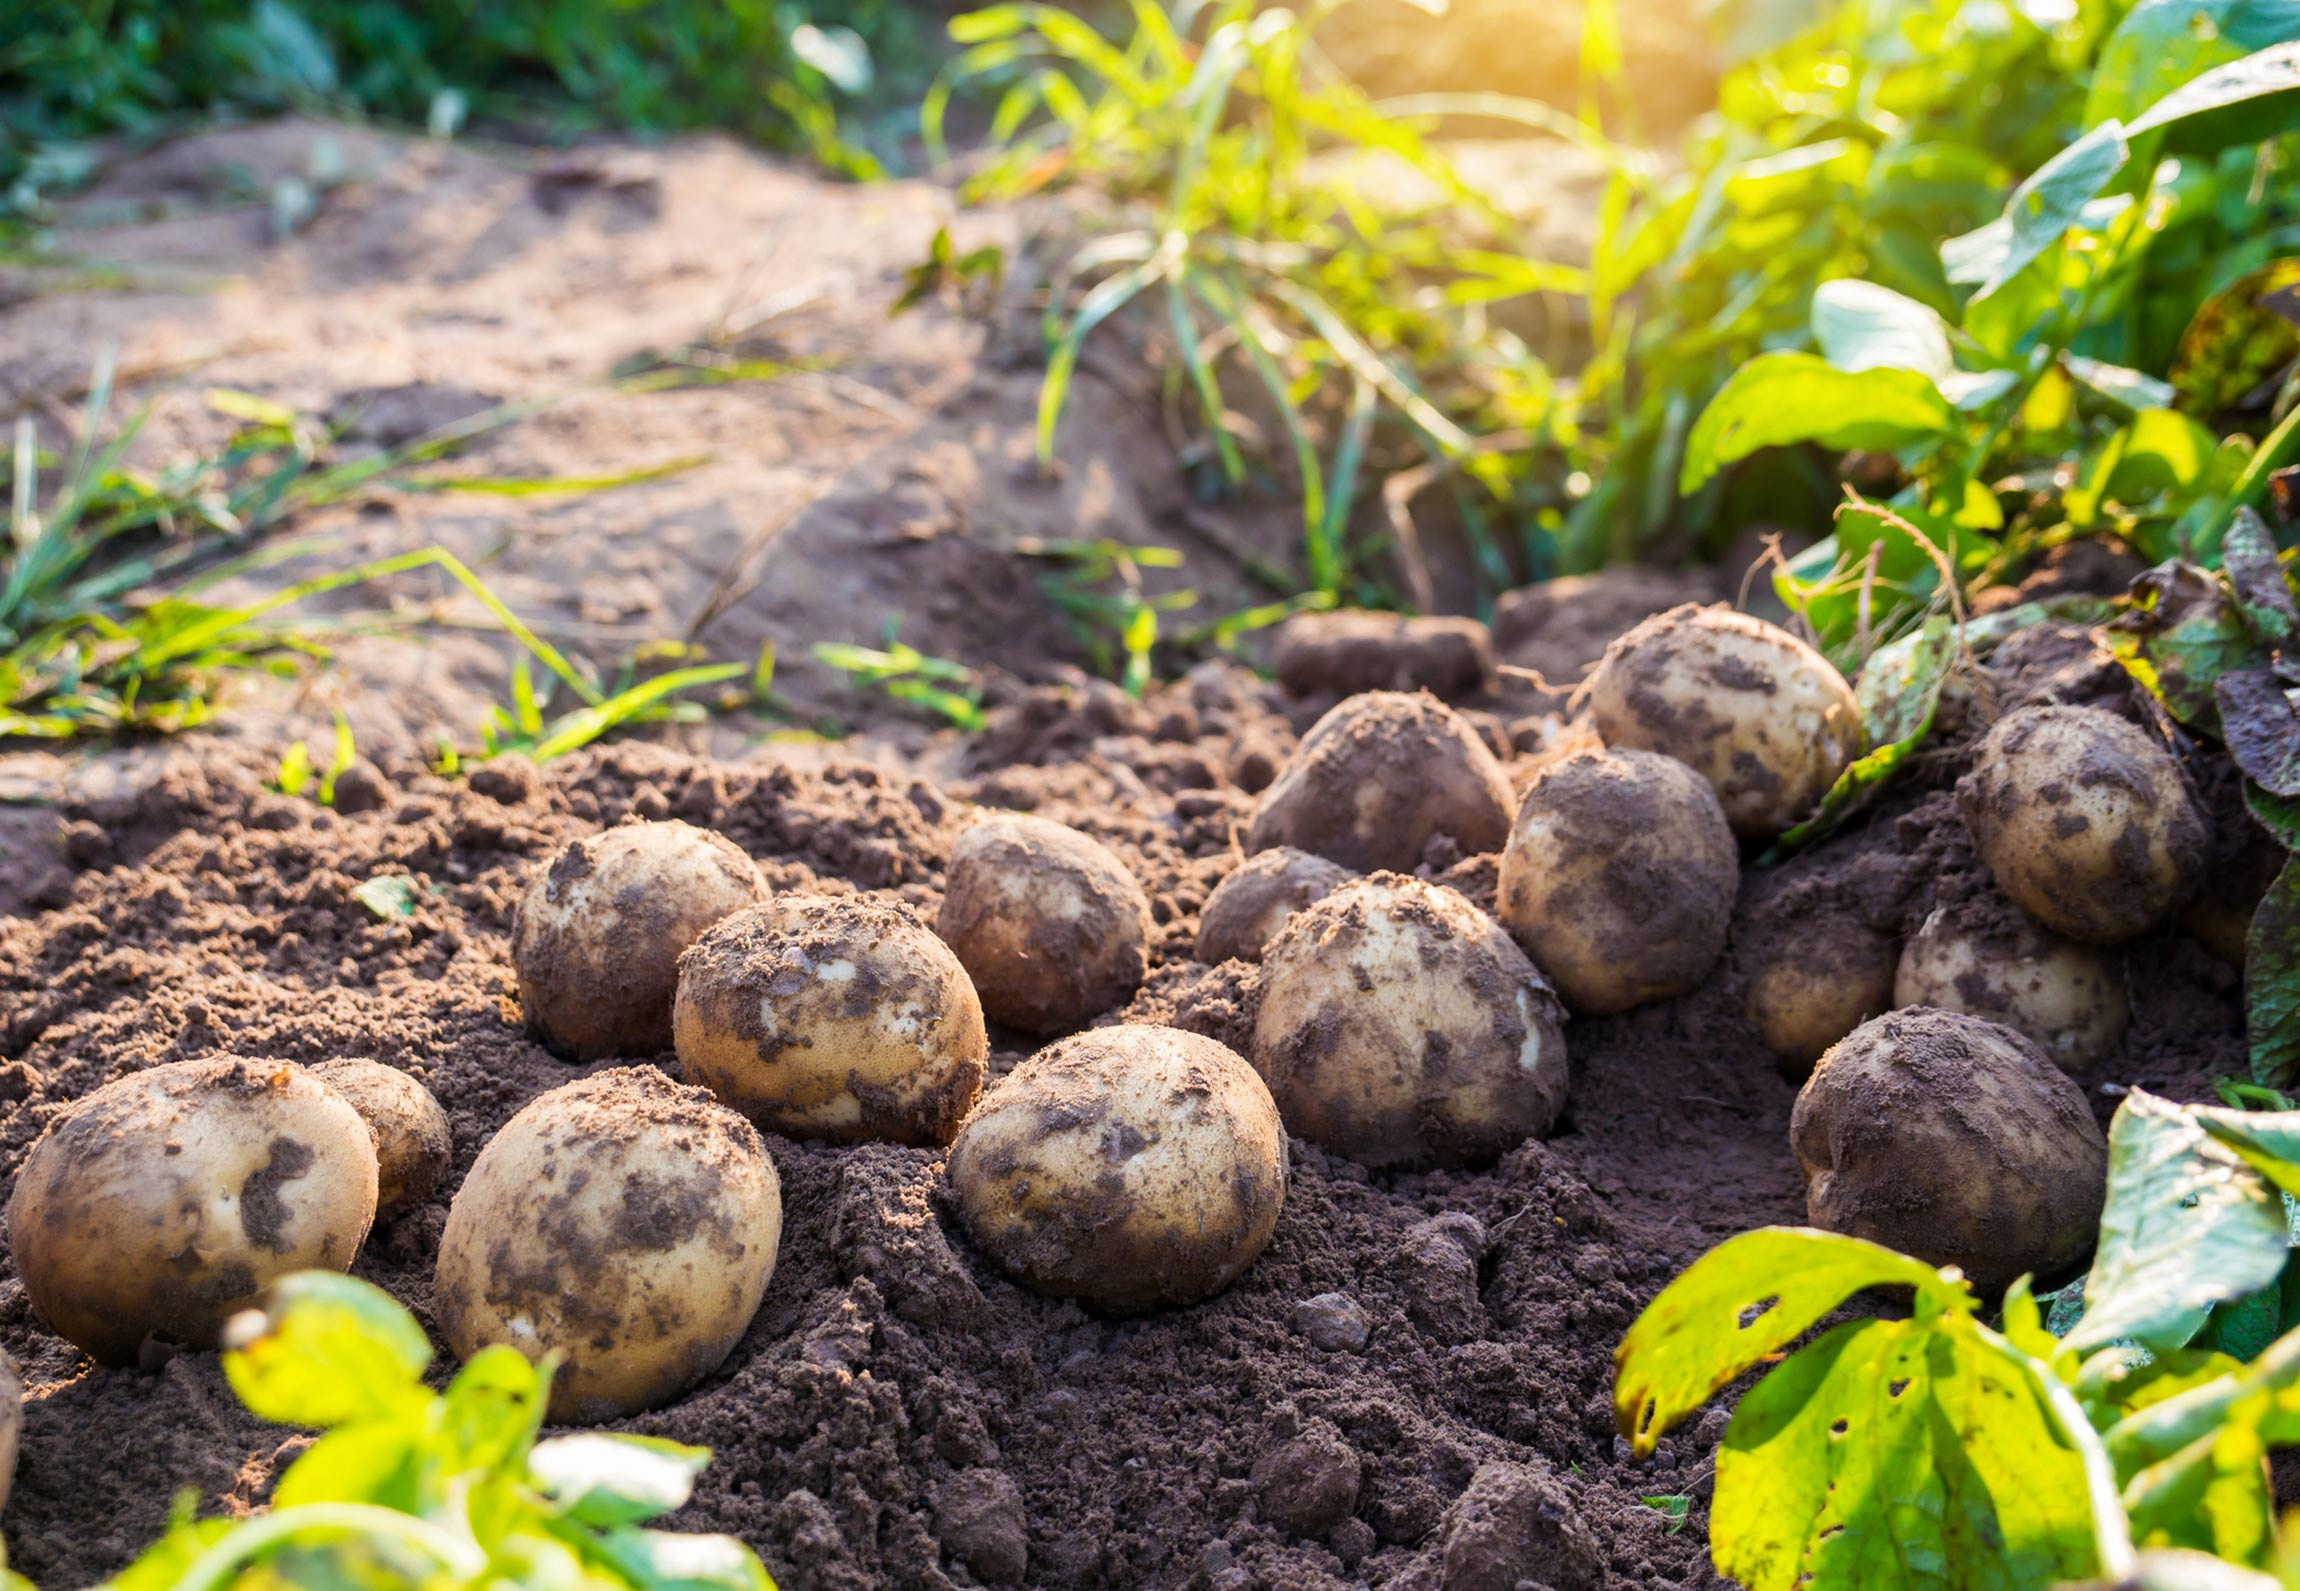 Potato nutrition: are potatoes healthy?